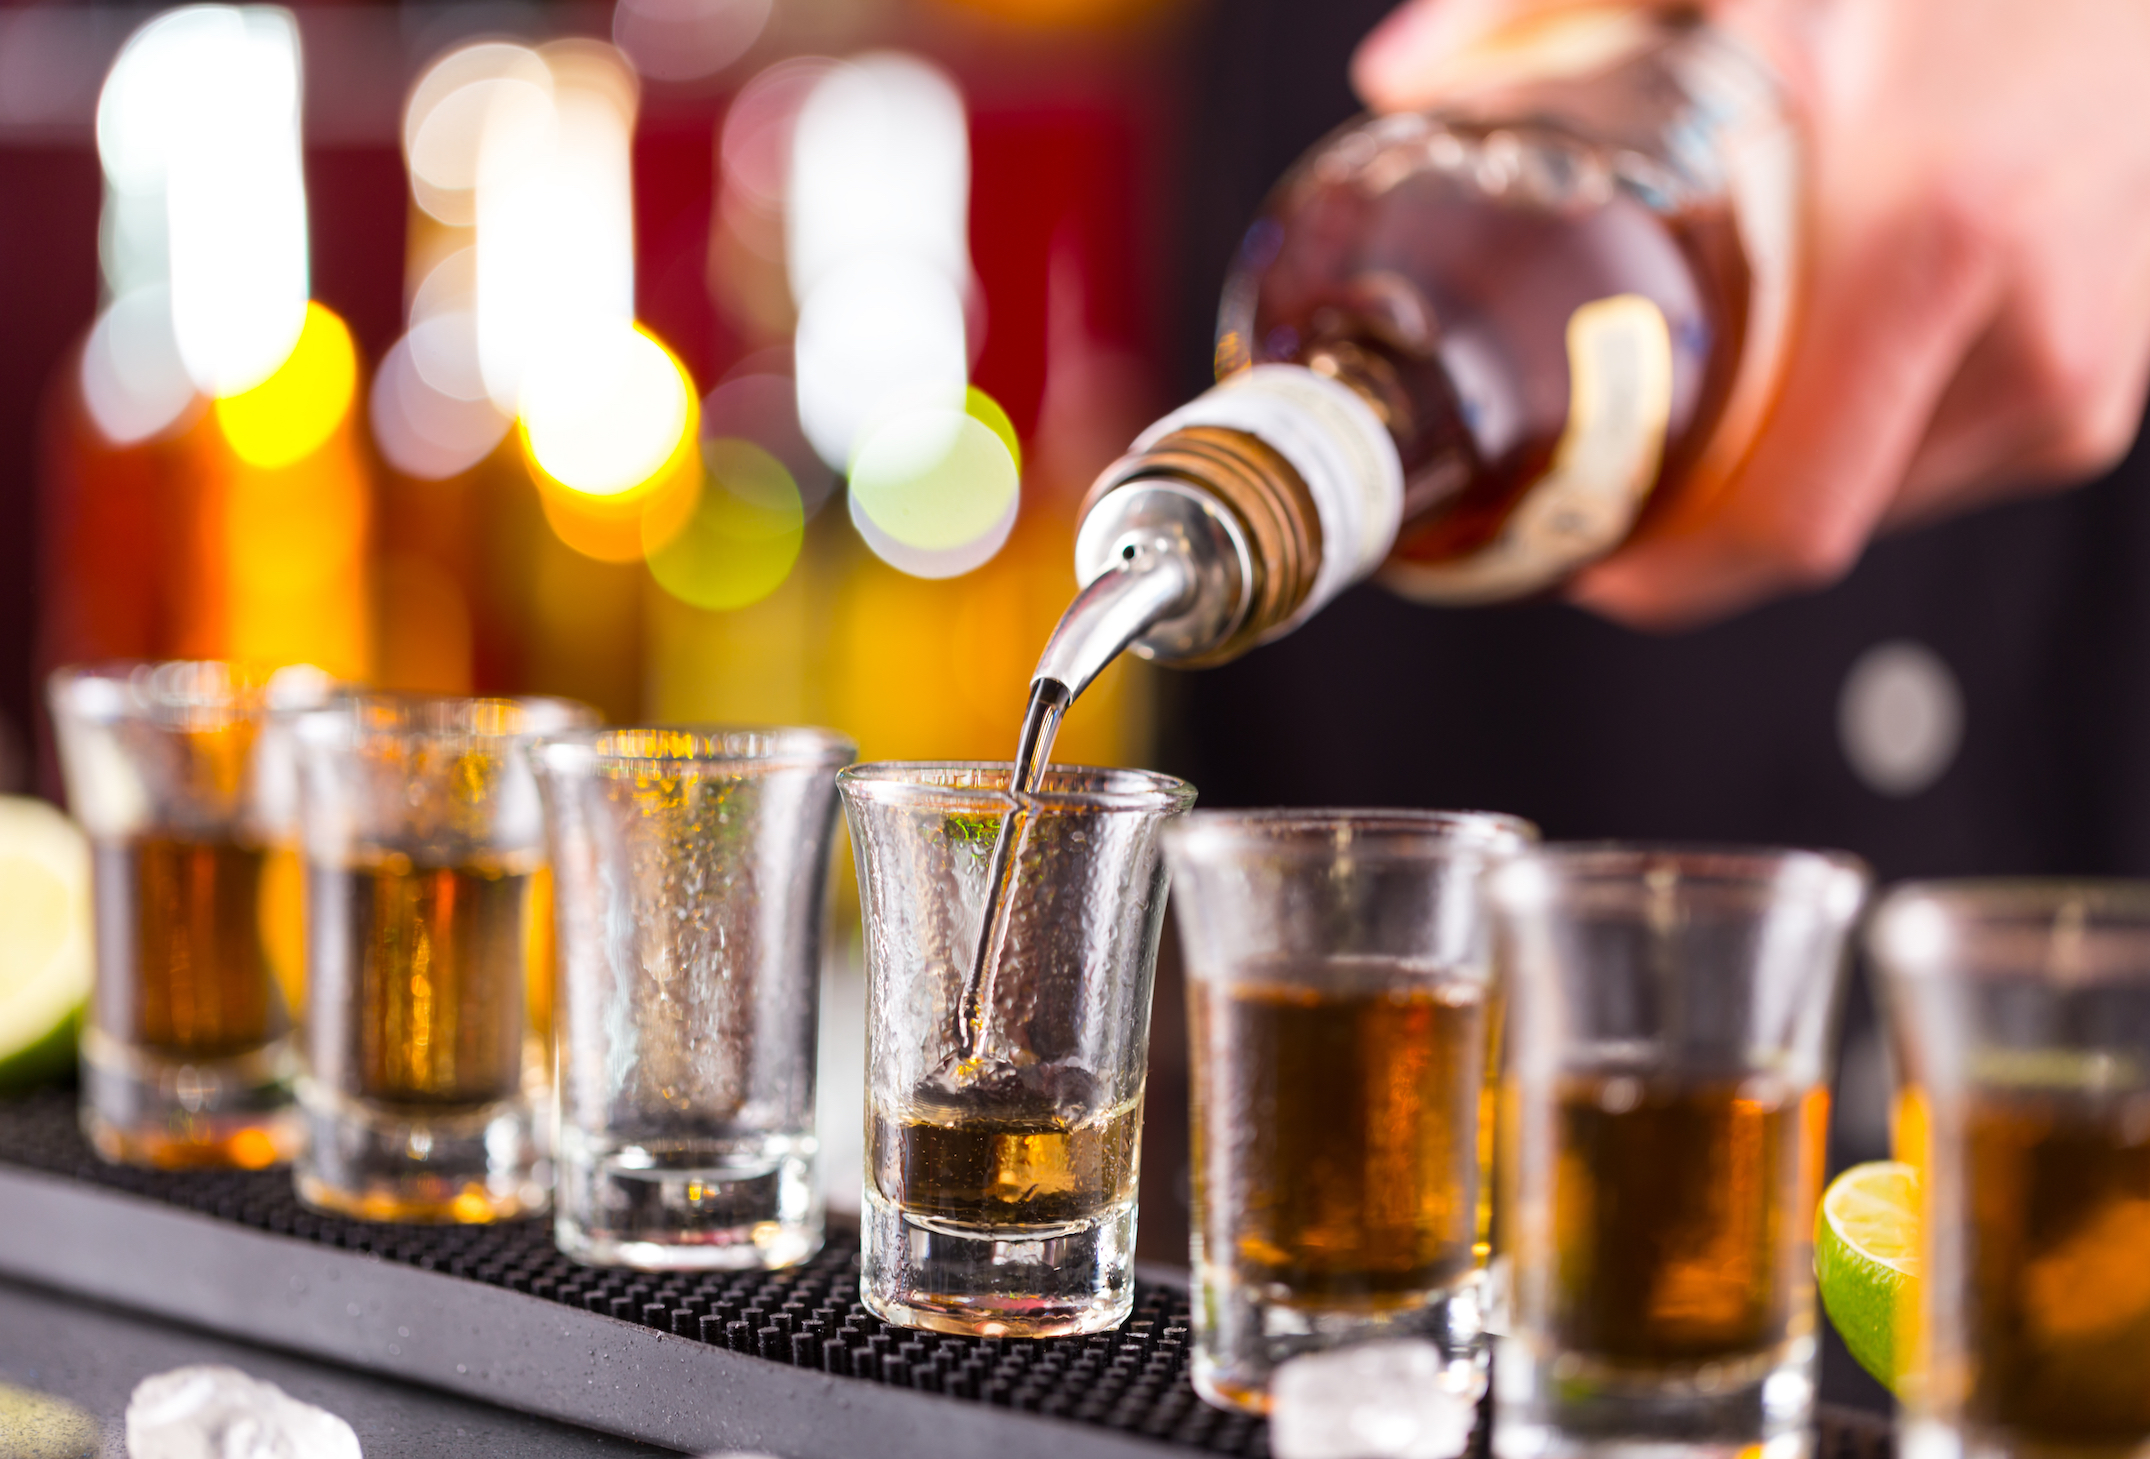 A comprehensive investigation into alcohol use has revealed that alcohol was found to be linked to 2.8 million deaths every year.